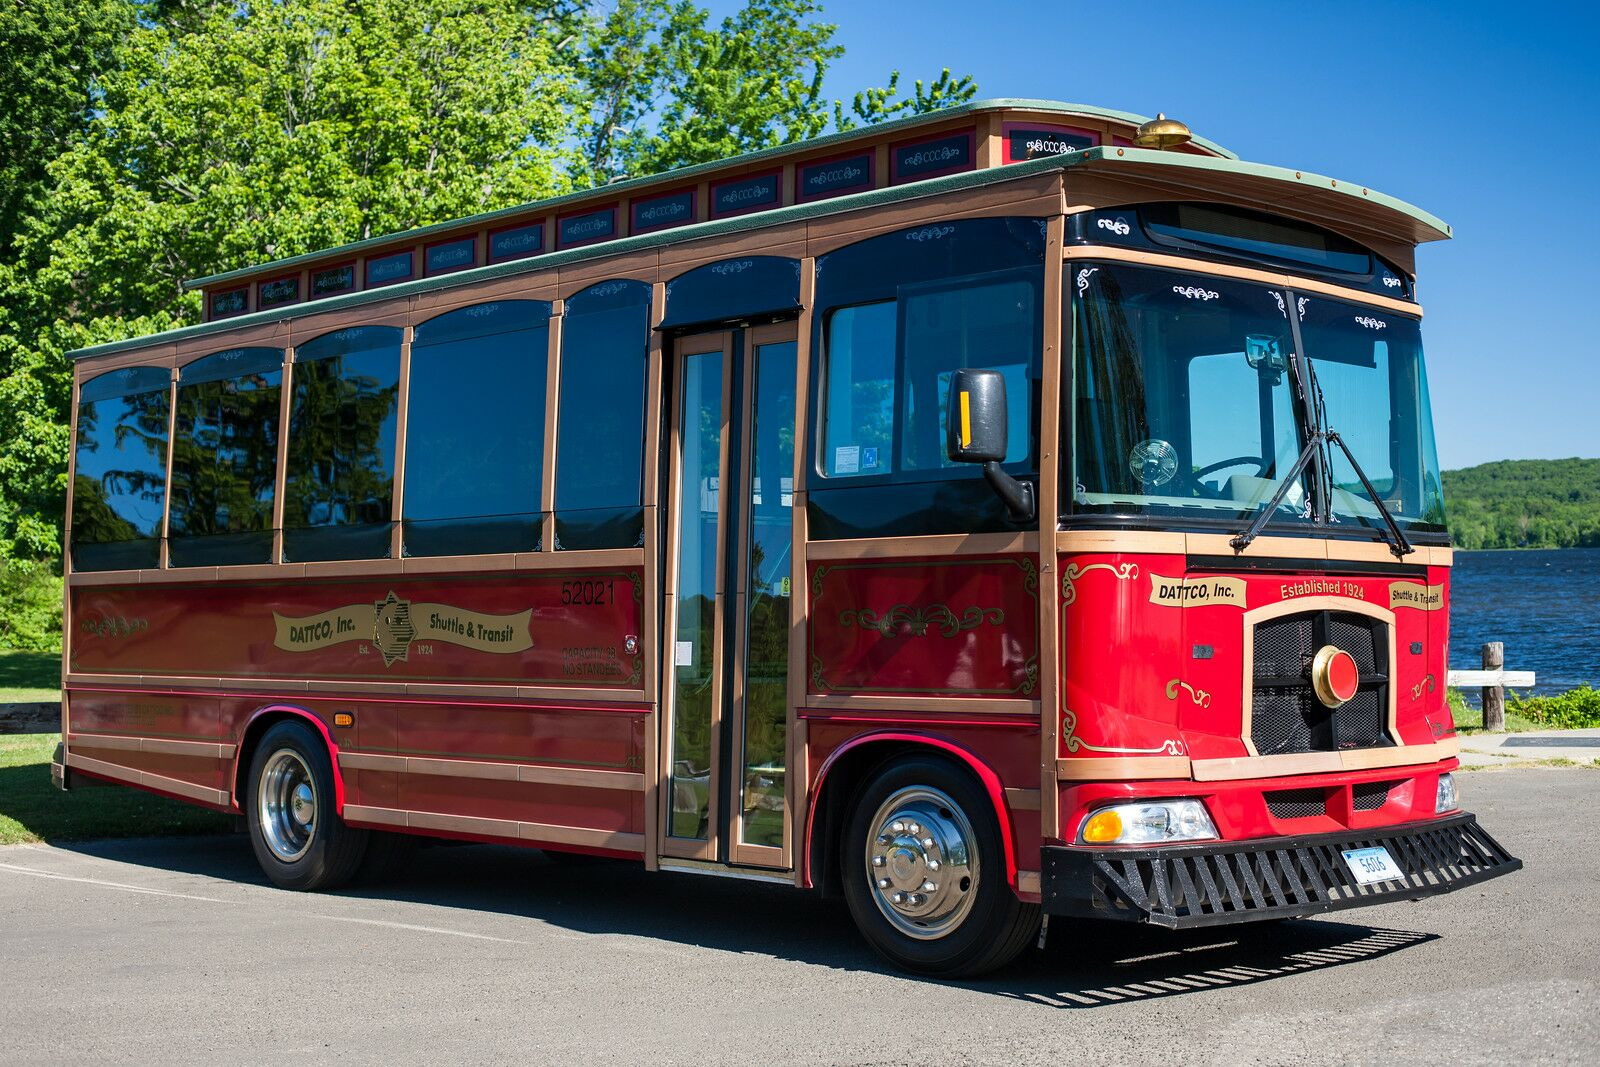 Dattco Weddings Special Events Transportation The Knot